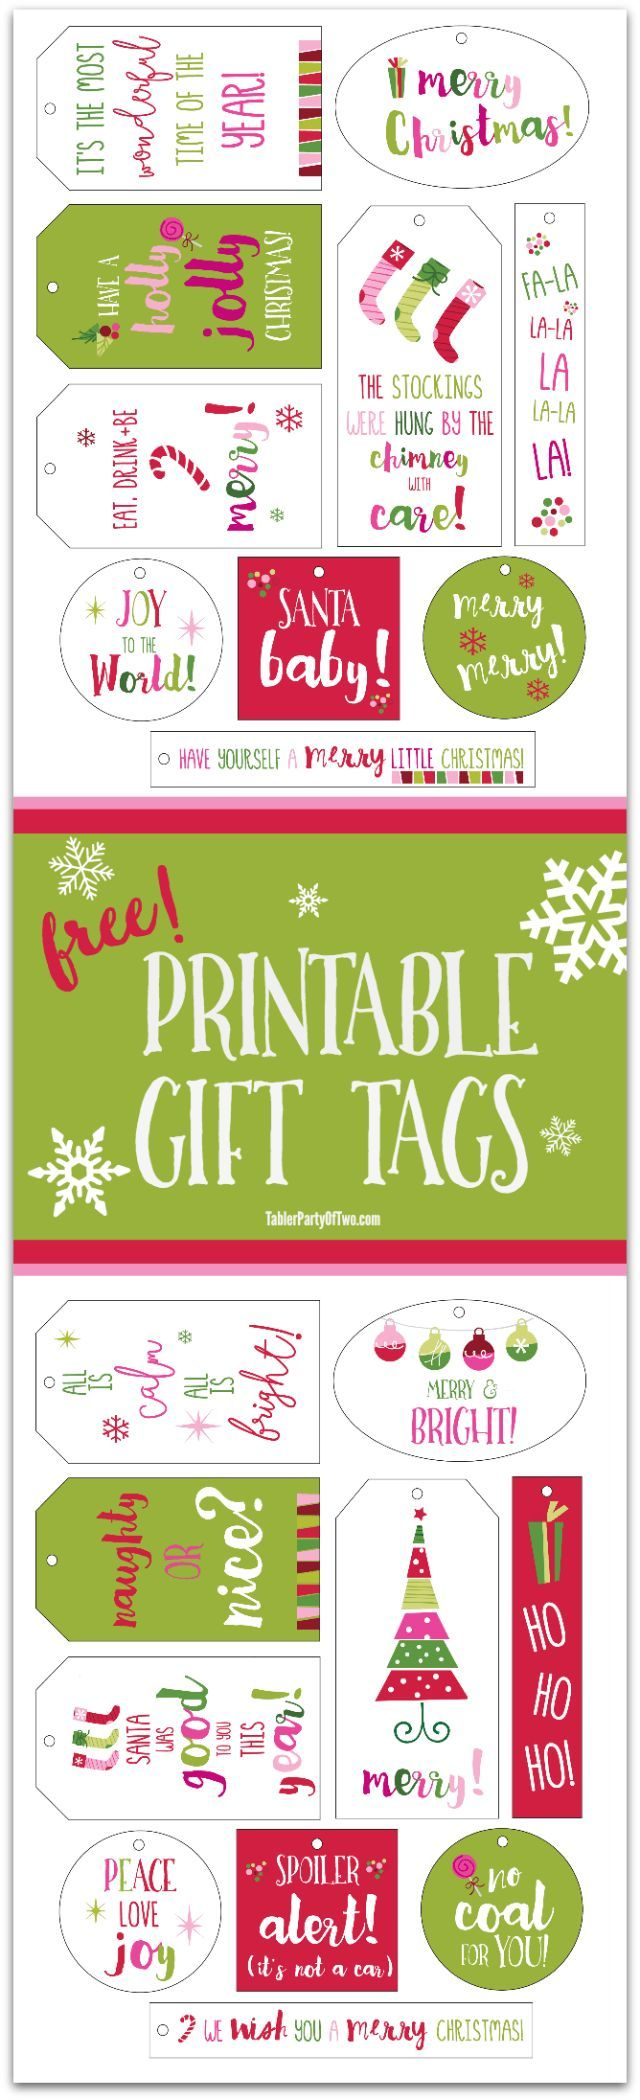 Free Printable Gift Cards Collection 2 Simple Prints Card Stock